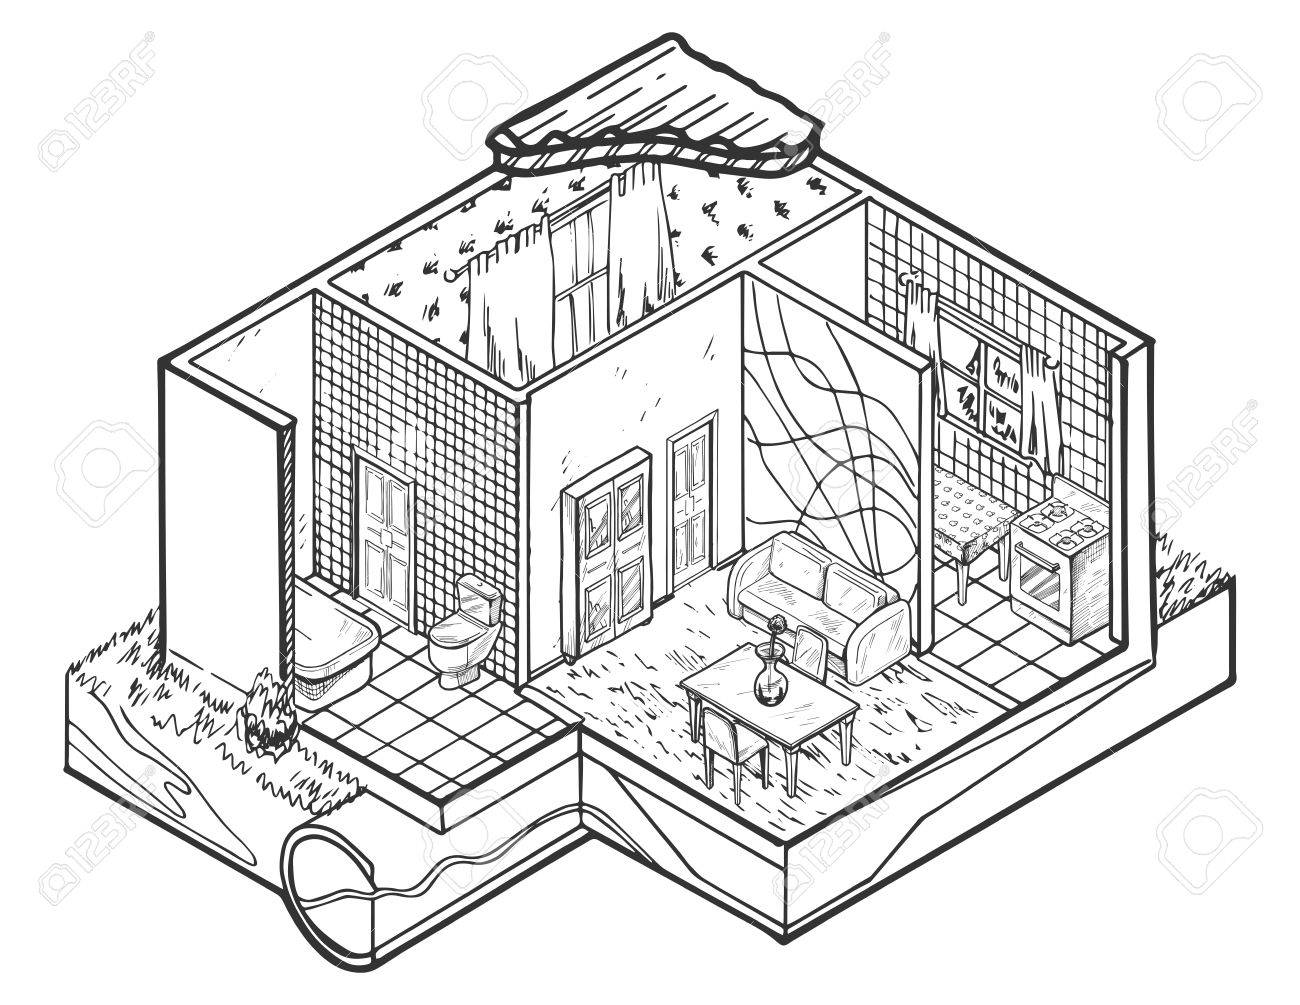 1300x1005 Vector Illustration Of House Interior Hand Drawn Architecture